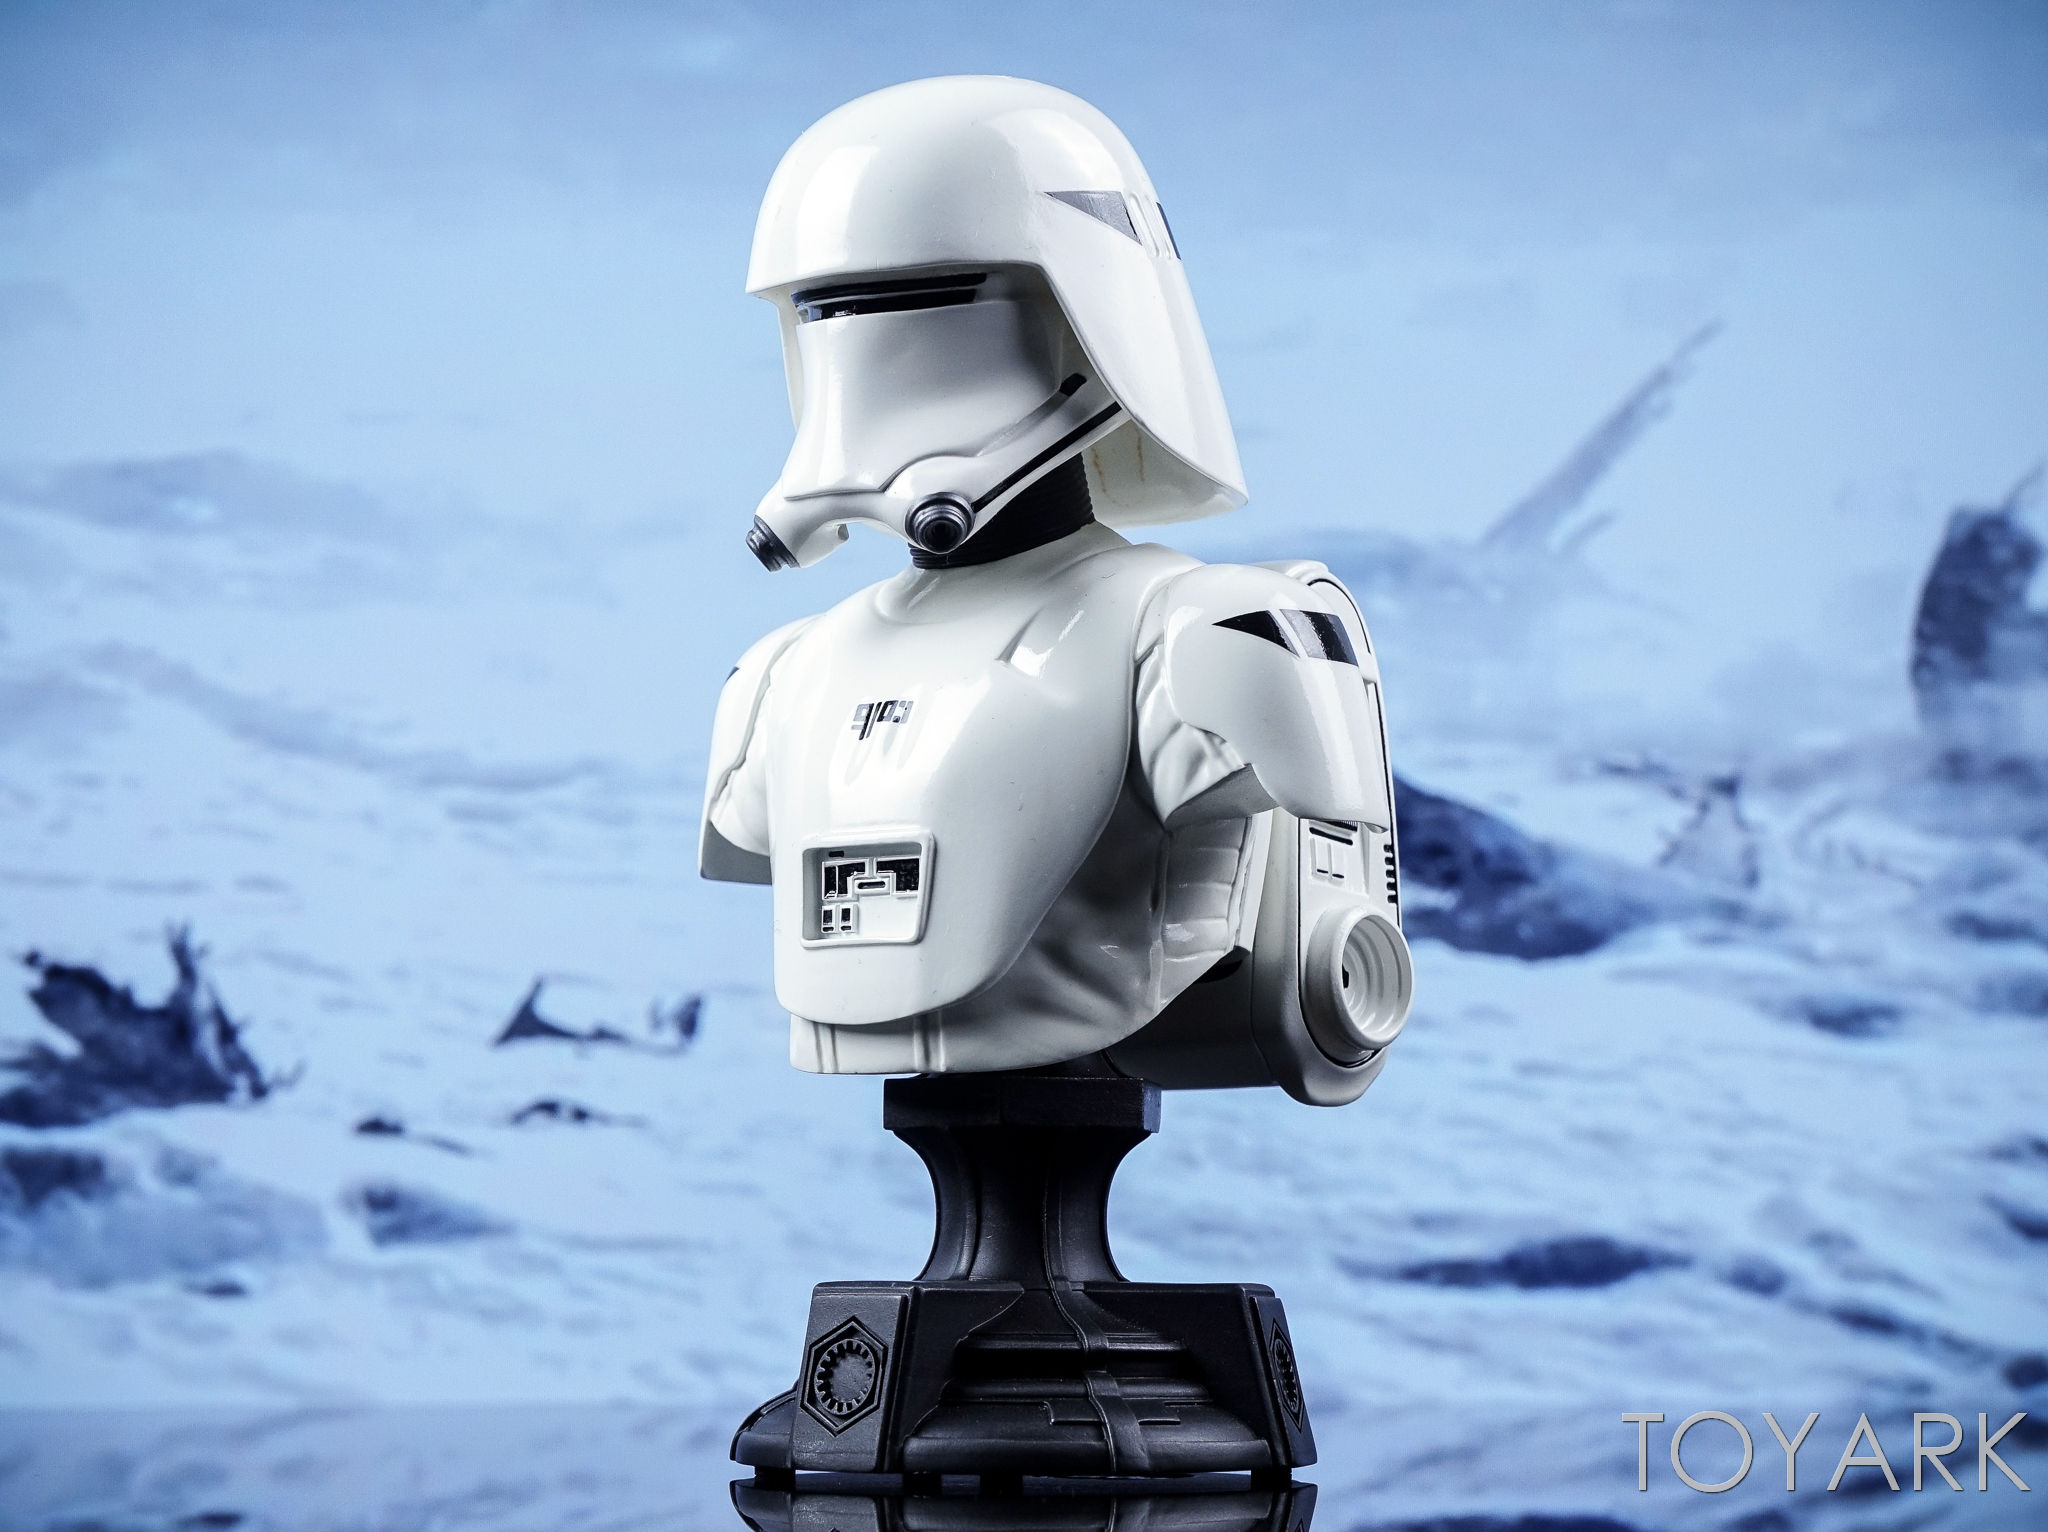 http://news.toyark.com/wp-content/uploads/sites/4/2016/12/Force-Awakens-Snowtrooper-Classic-Bust-028.jpg